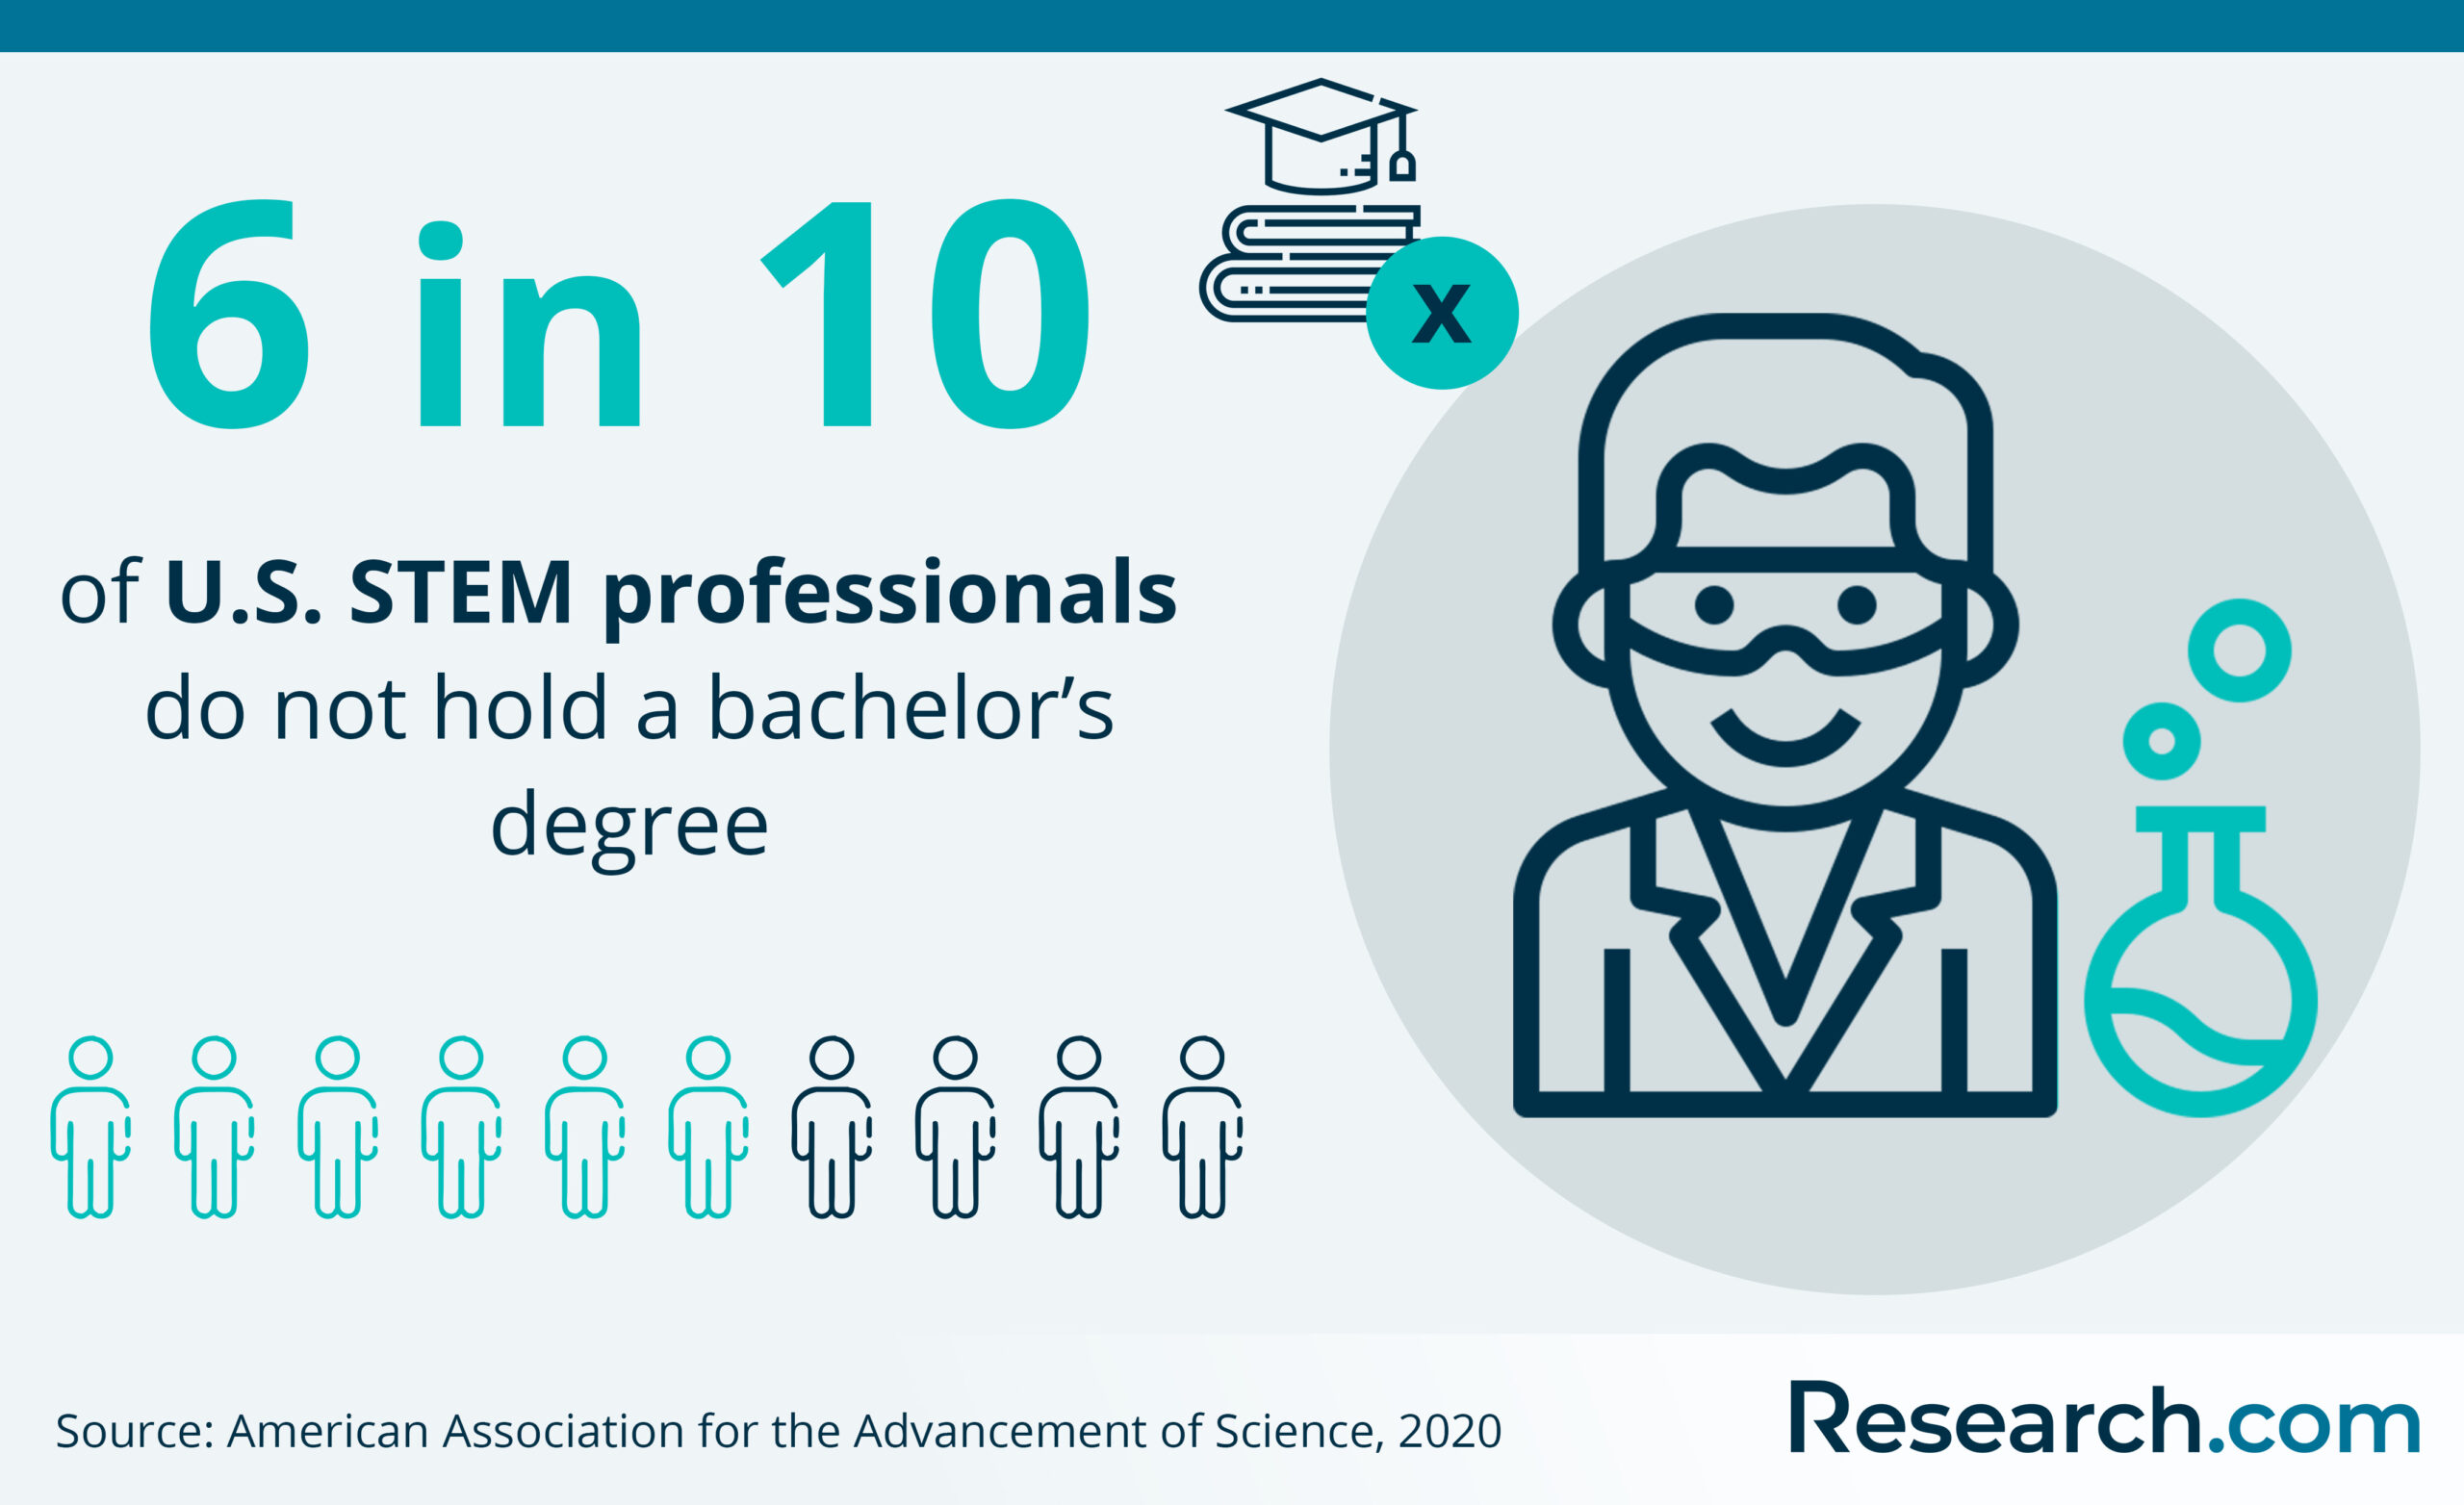 STEM professionals without bachelor's degree (U.S.)